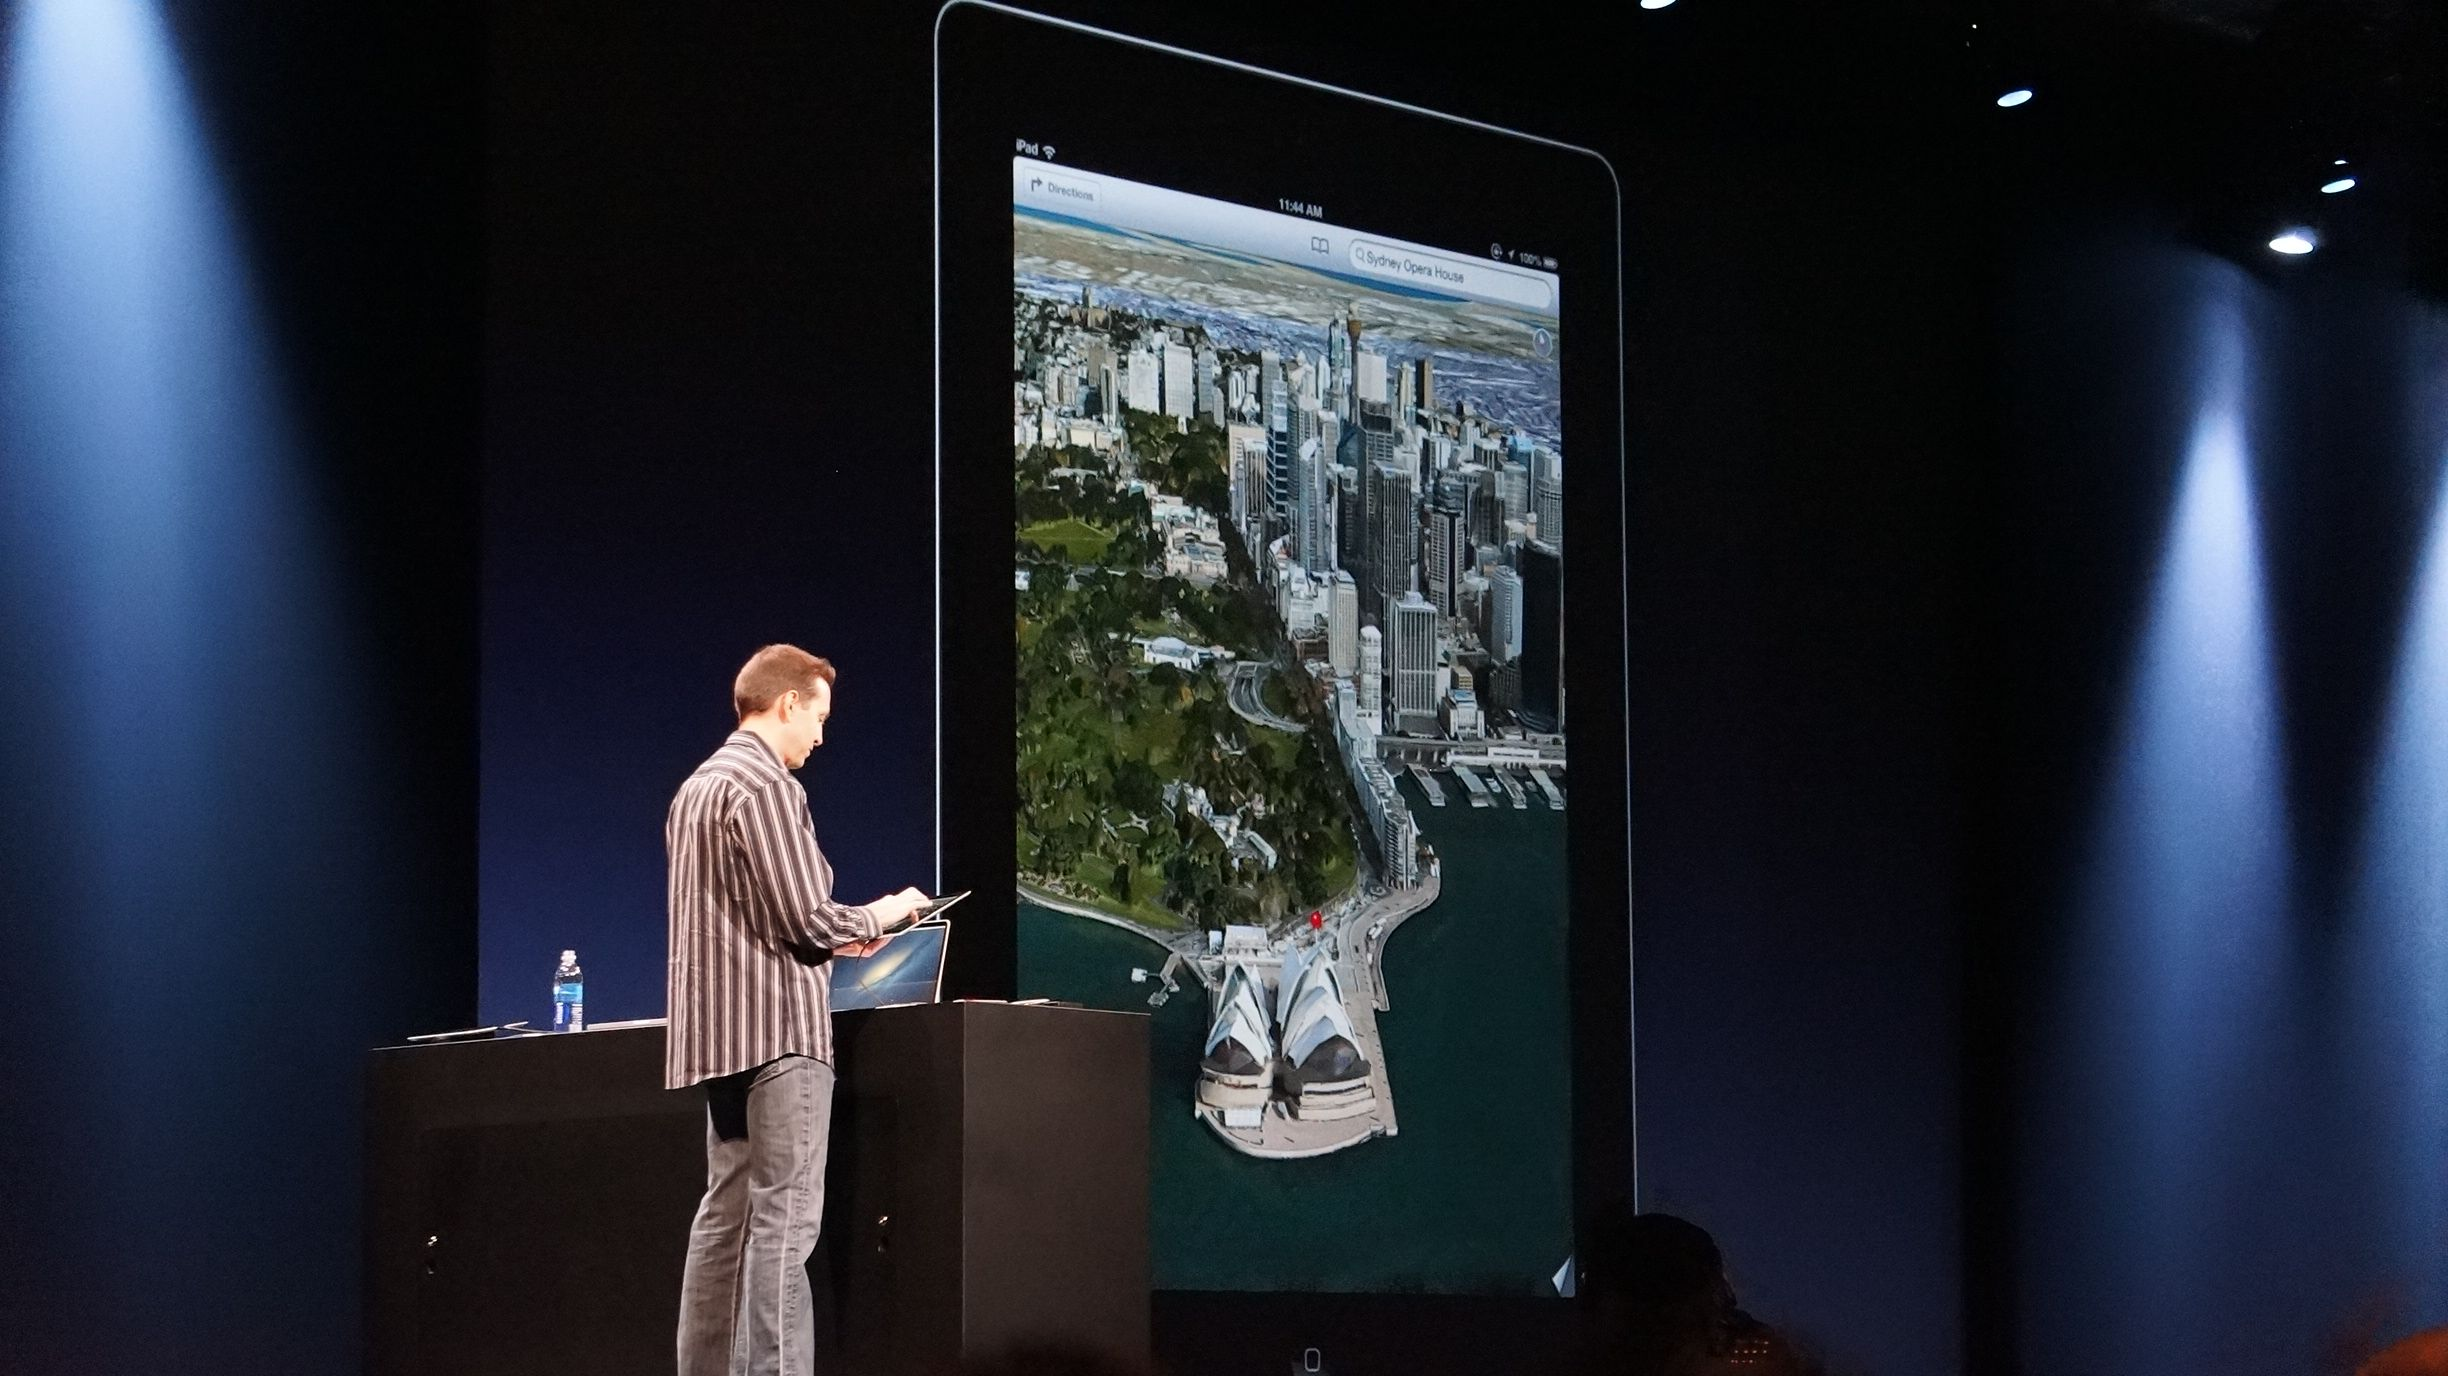 Scott Forstall demonstrates Flyover, Apple's new 3D maps feature.